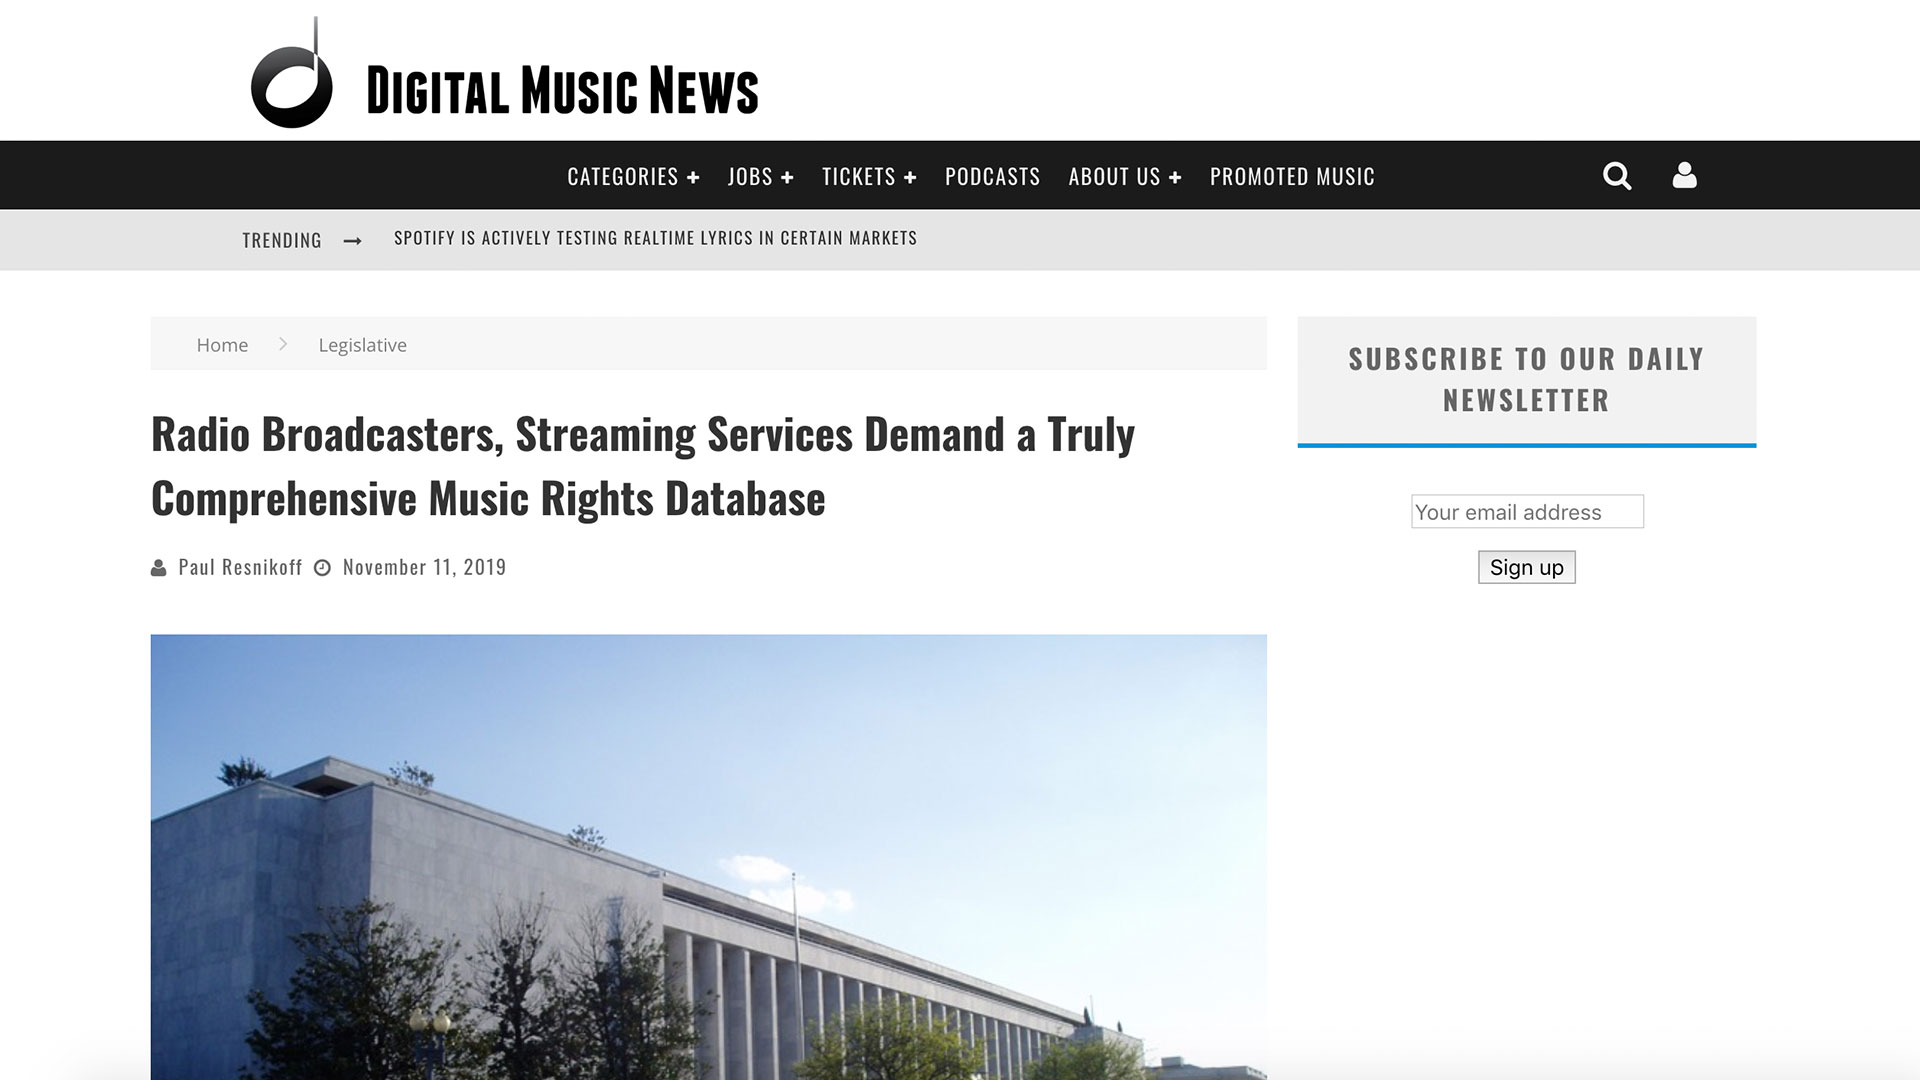 Fairness Rocks News Radio Broadcasters, Streaming Services Demand a Truly Comprehensive Music Rights Database